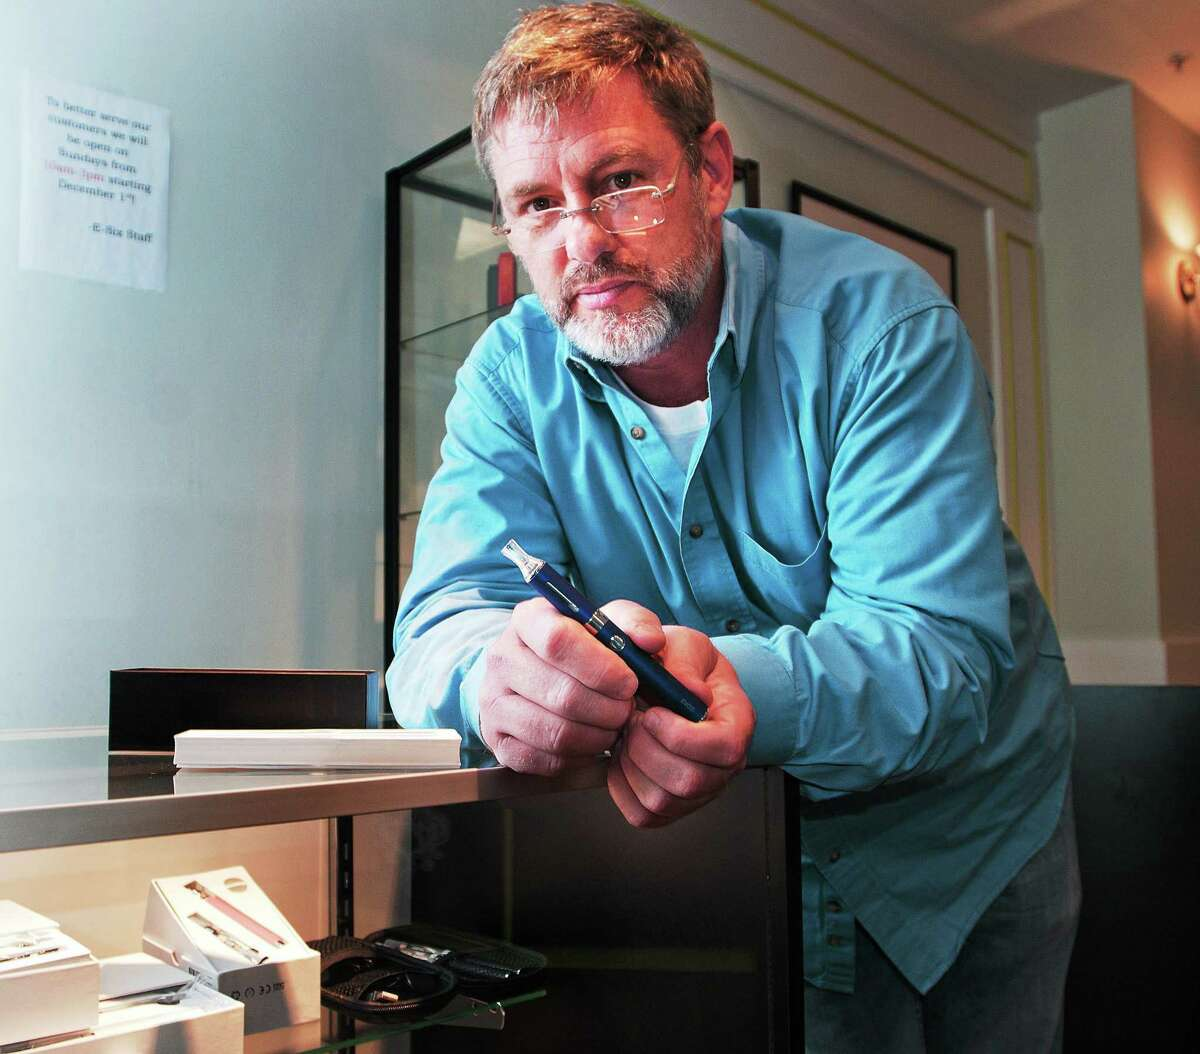 (Peter Casolino ó New Haven Register) Ted Szabo, one of the owners of E-Six, electronic cigarette retailer in Branford, holds a eVod, the store's most popular e-cigarette kits. pcasolino@NewHavenRegister